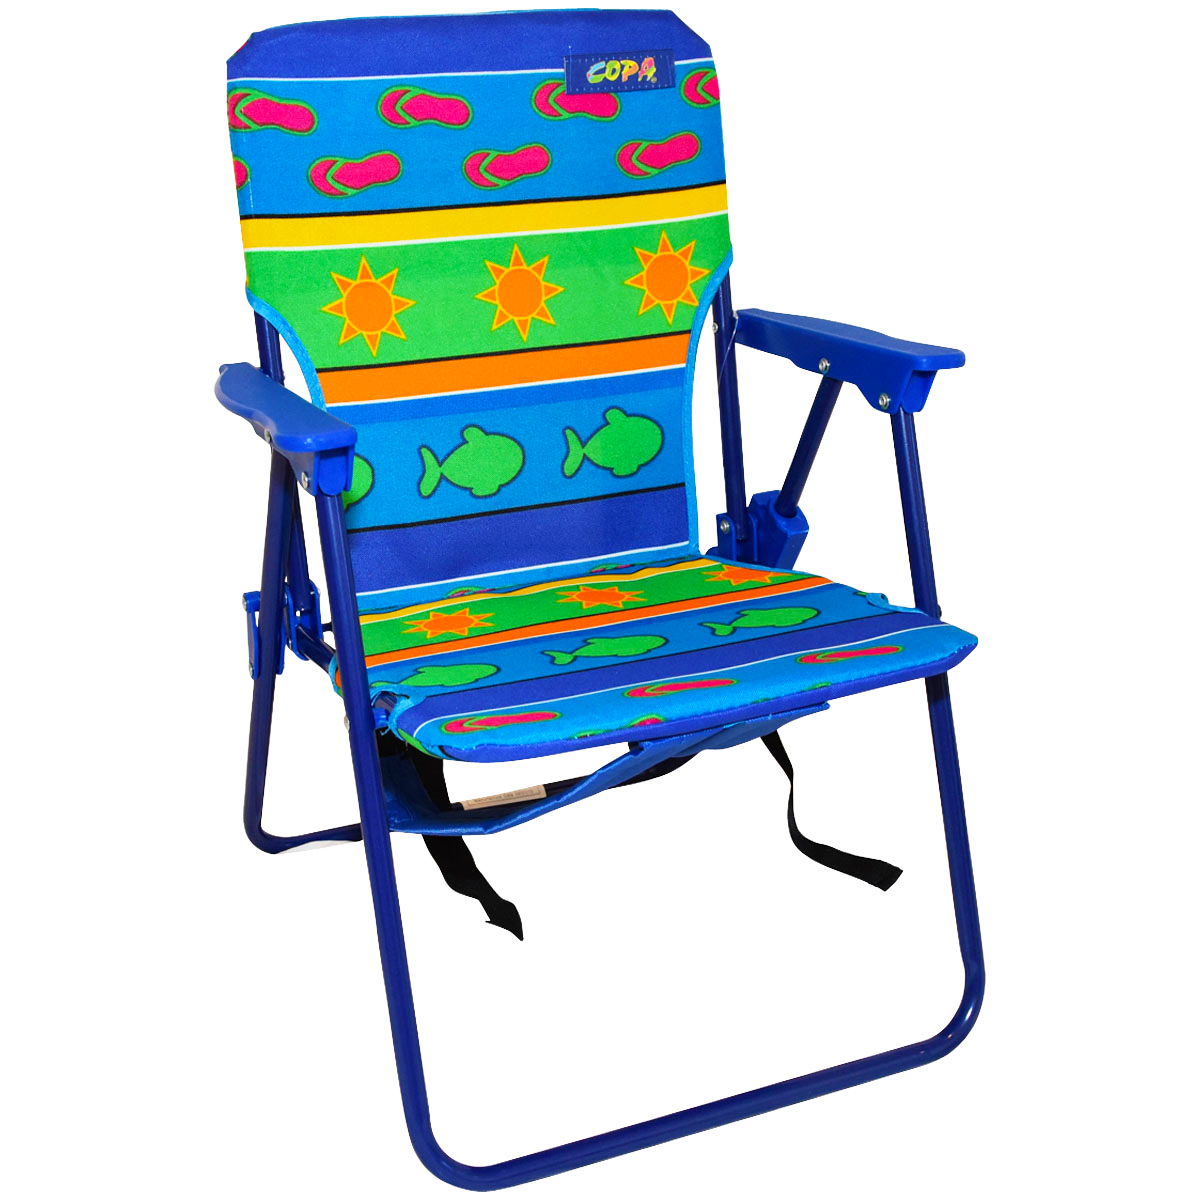 best inexpensive beach chairs american signature furniture small chair for kid cheap and camping